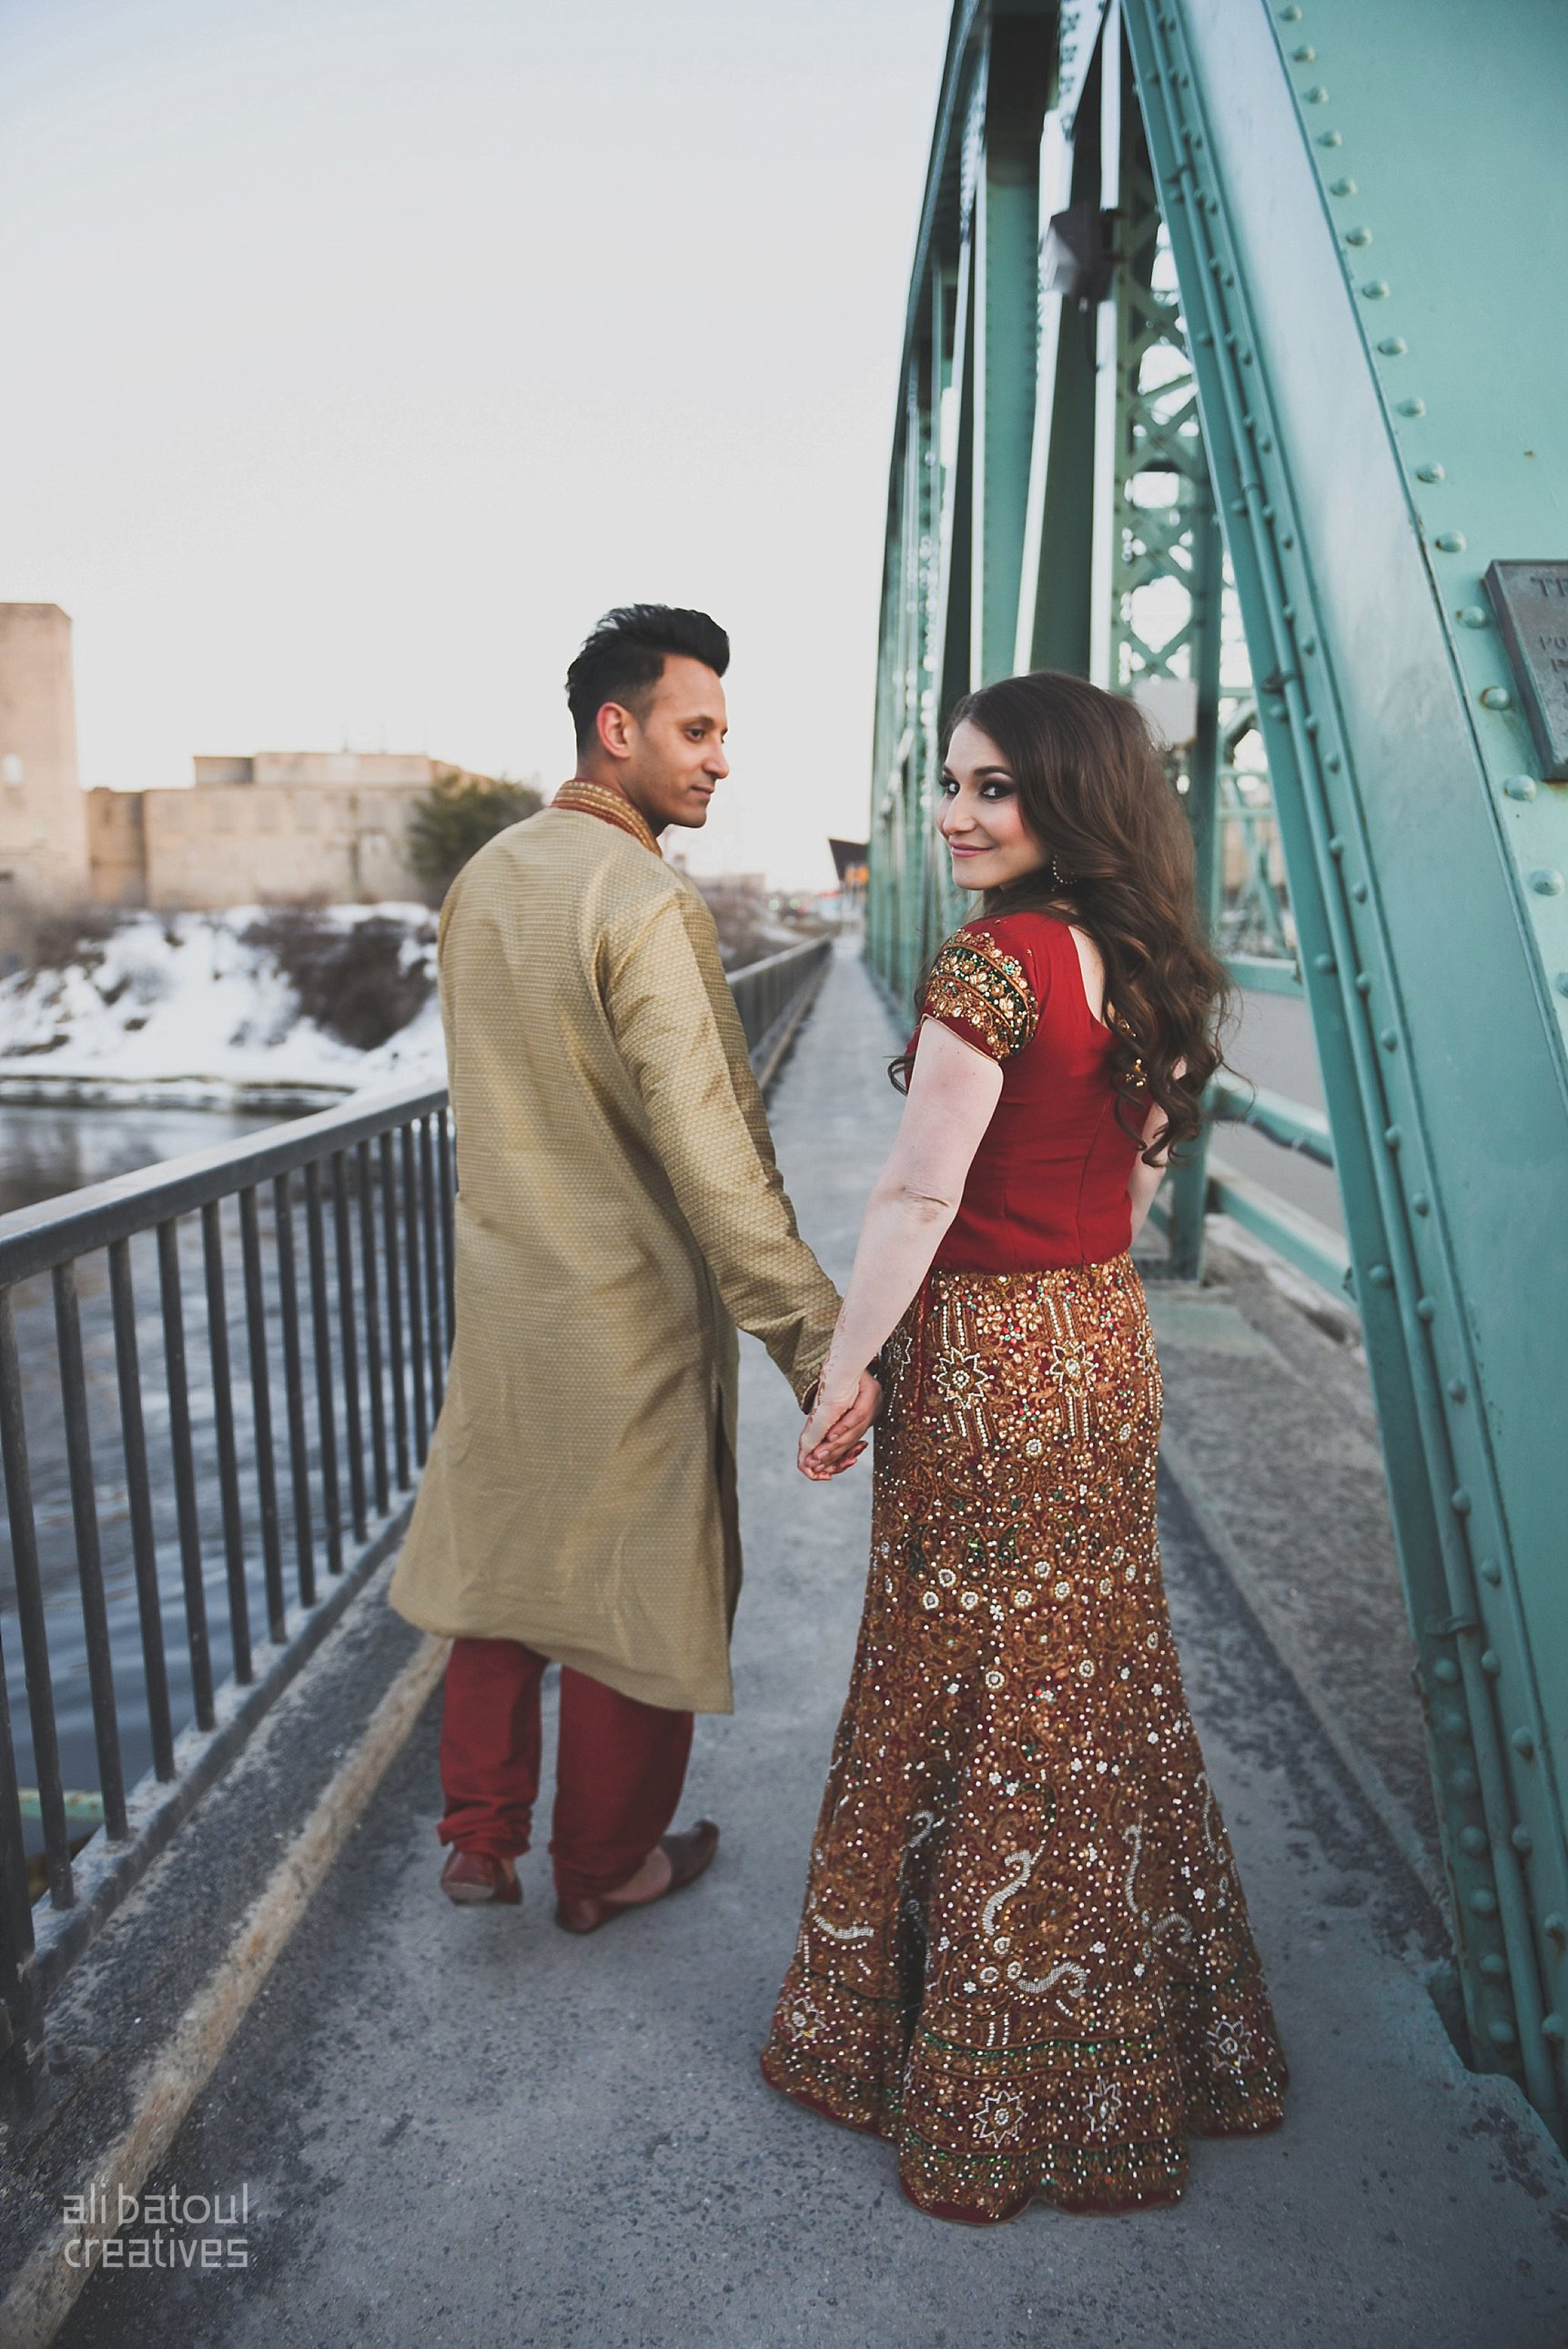 Indian-inspired bridal shoot - Ali Batoul Creatives (red)-95_Red Dress (BTS)